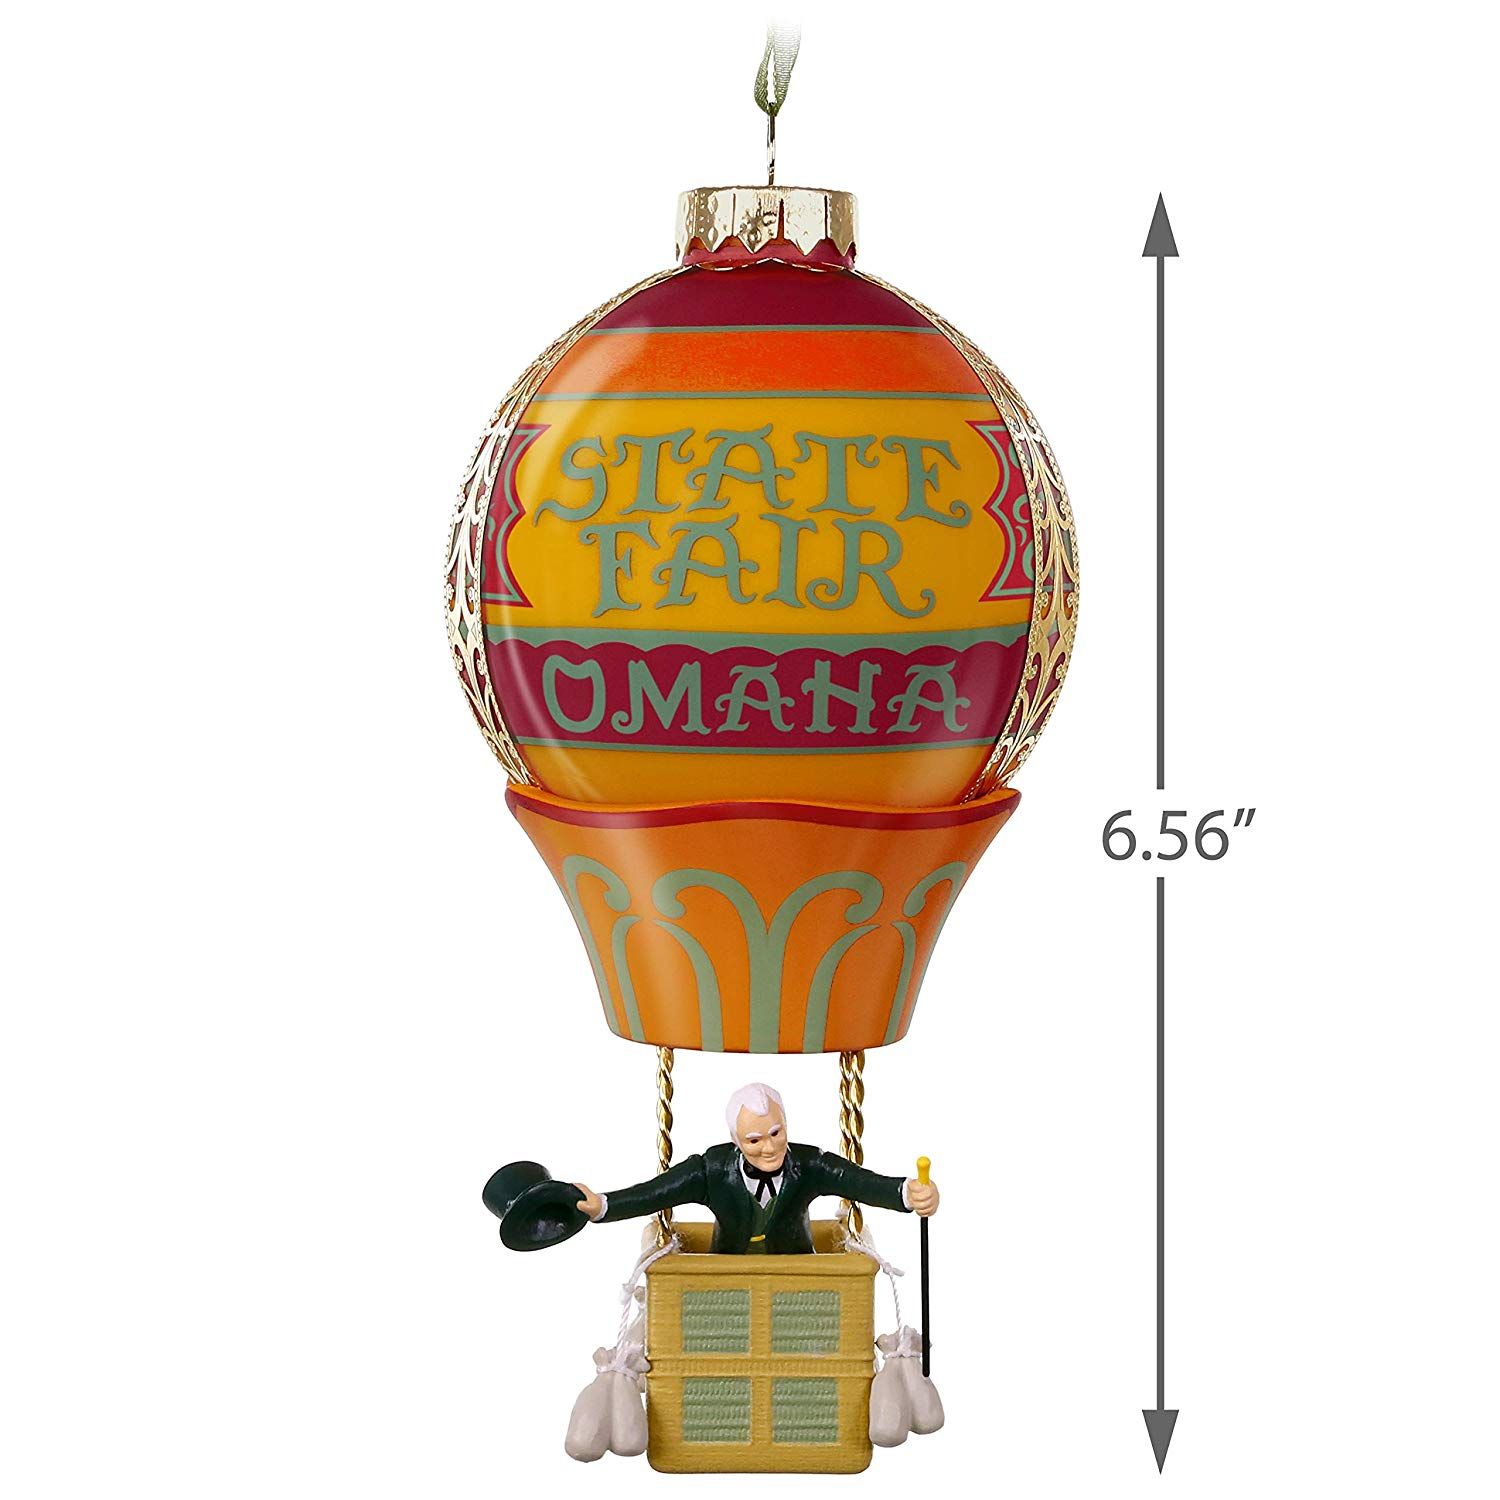 Hallmark Keepsake Christmas Ornament 2019 Year Dated The The Wizard of Oz  Up, Up and Away Hot Air Balloon, Glass and Metal, Up Up and.